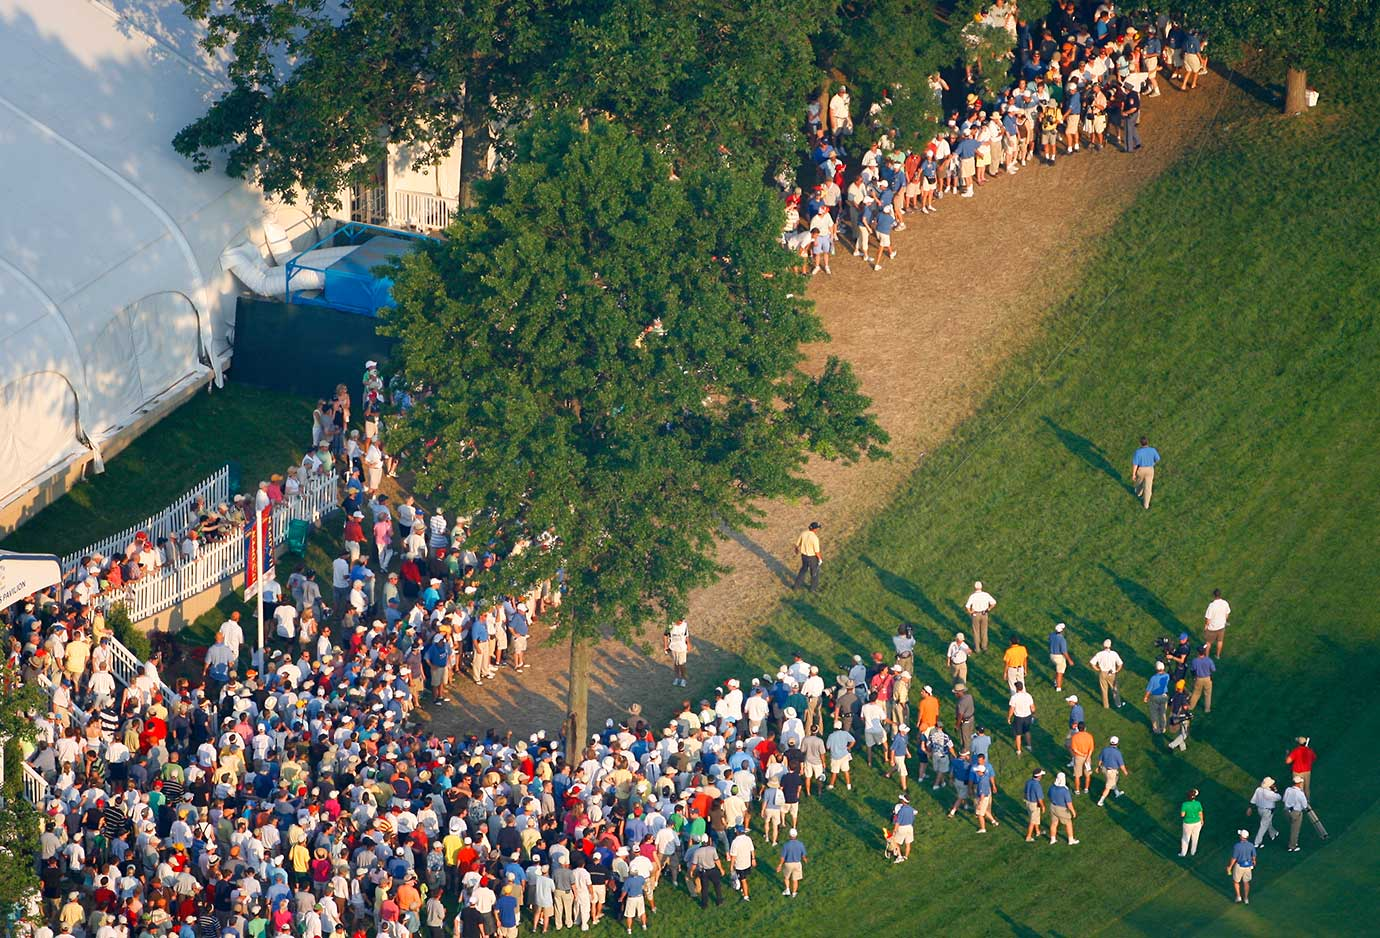 With a one-stroke lead heading to the final hole at the 2012 U.S. Open, Phil Mickelson (yellow shirt) blew his chance to win a third straight major when his tee shot bounced off this hospitality tent at Winged Foot and landed way astray of the fairway. He ended up with a double bogey.